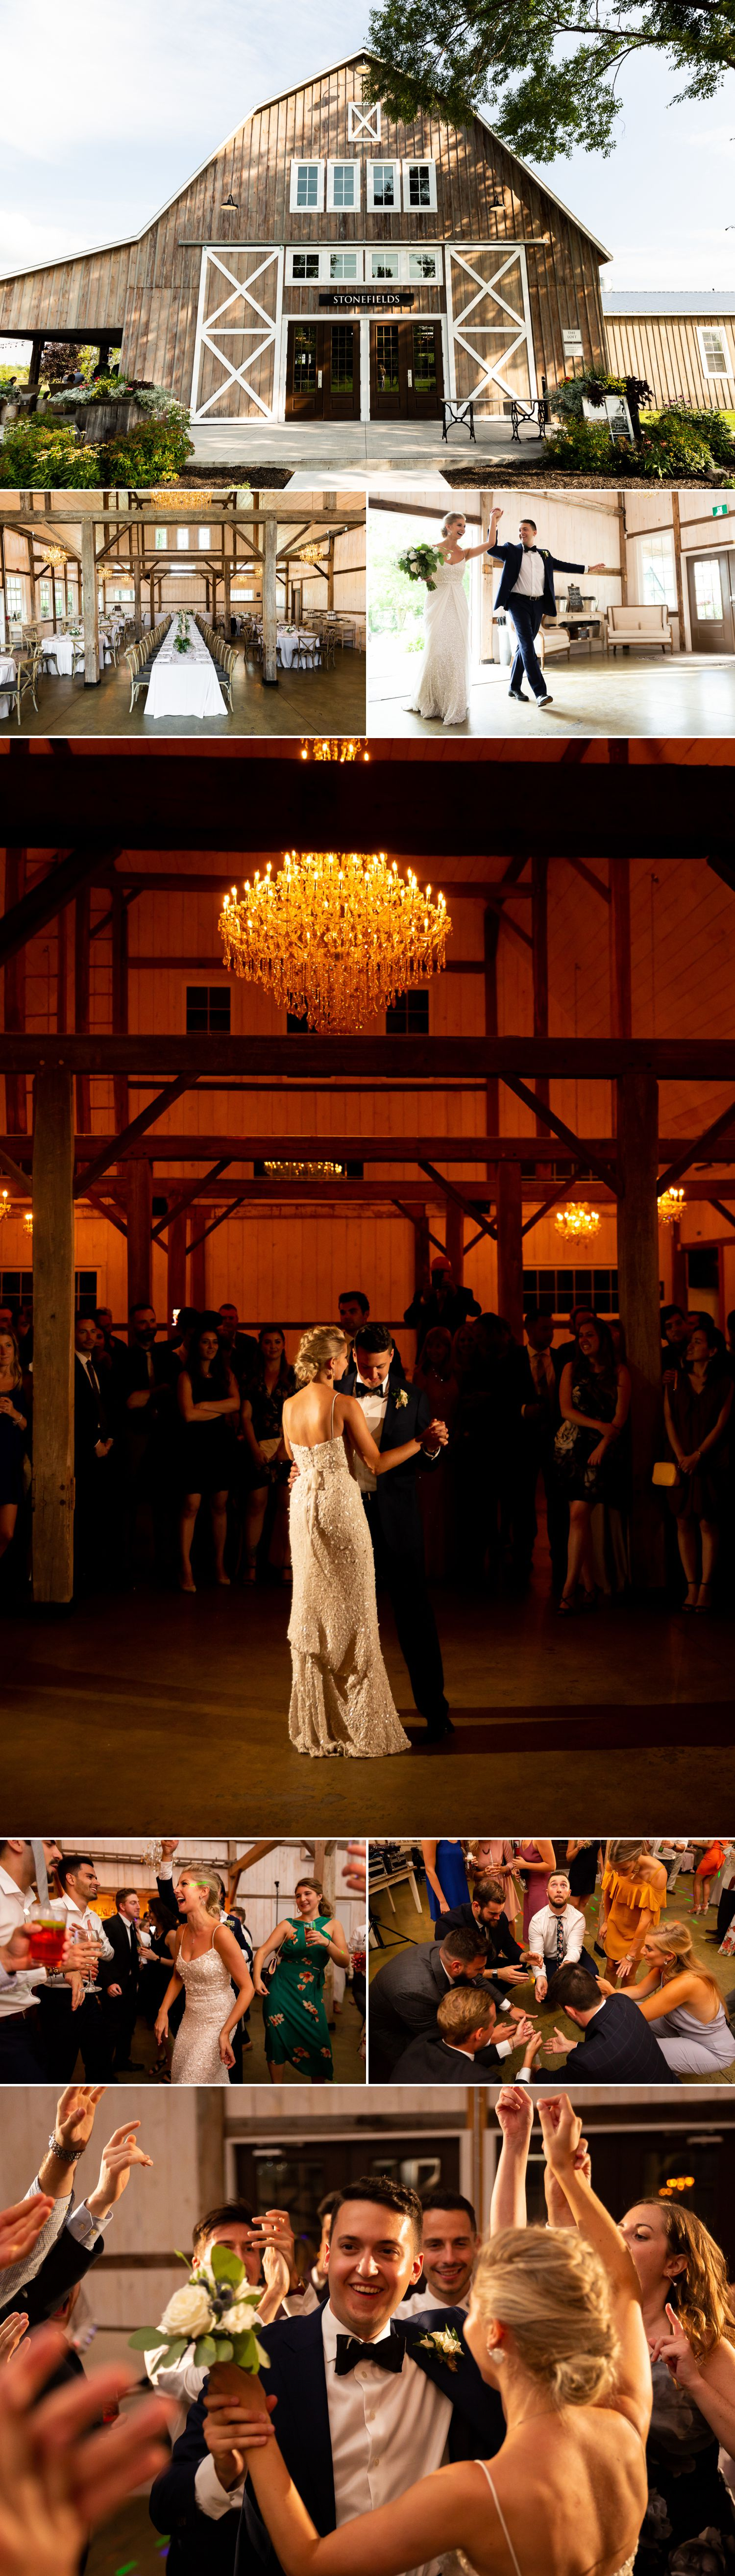 A wedding reception taking place inside the newly built barn at Stonefields Estate